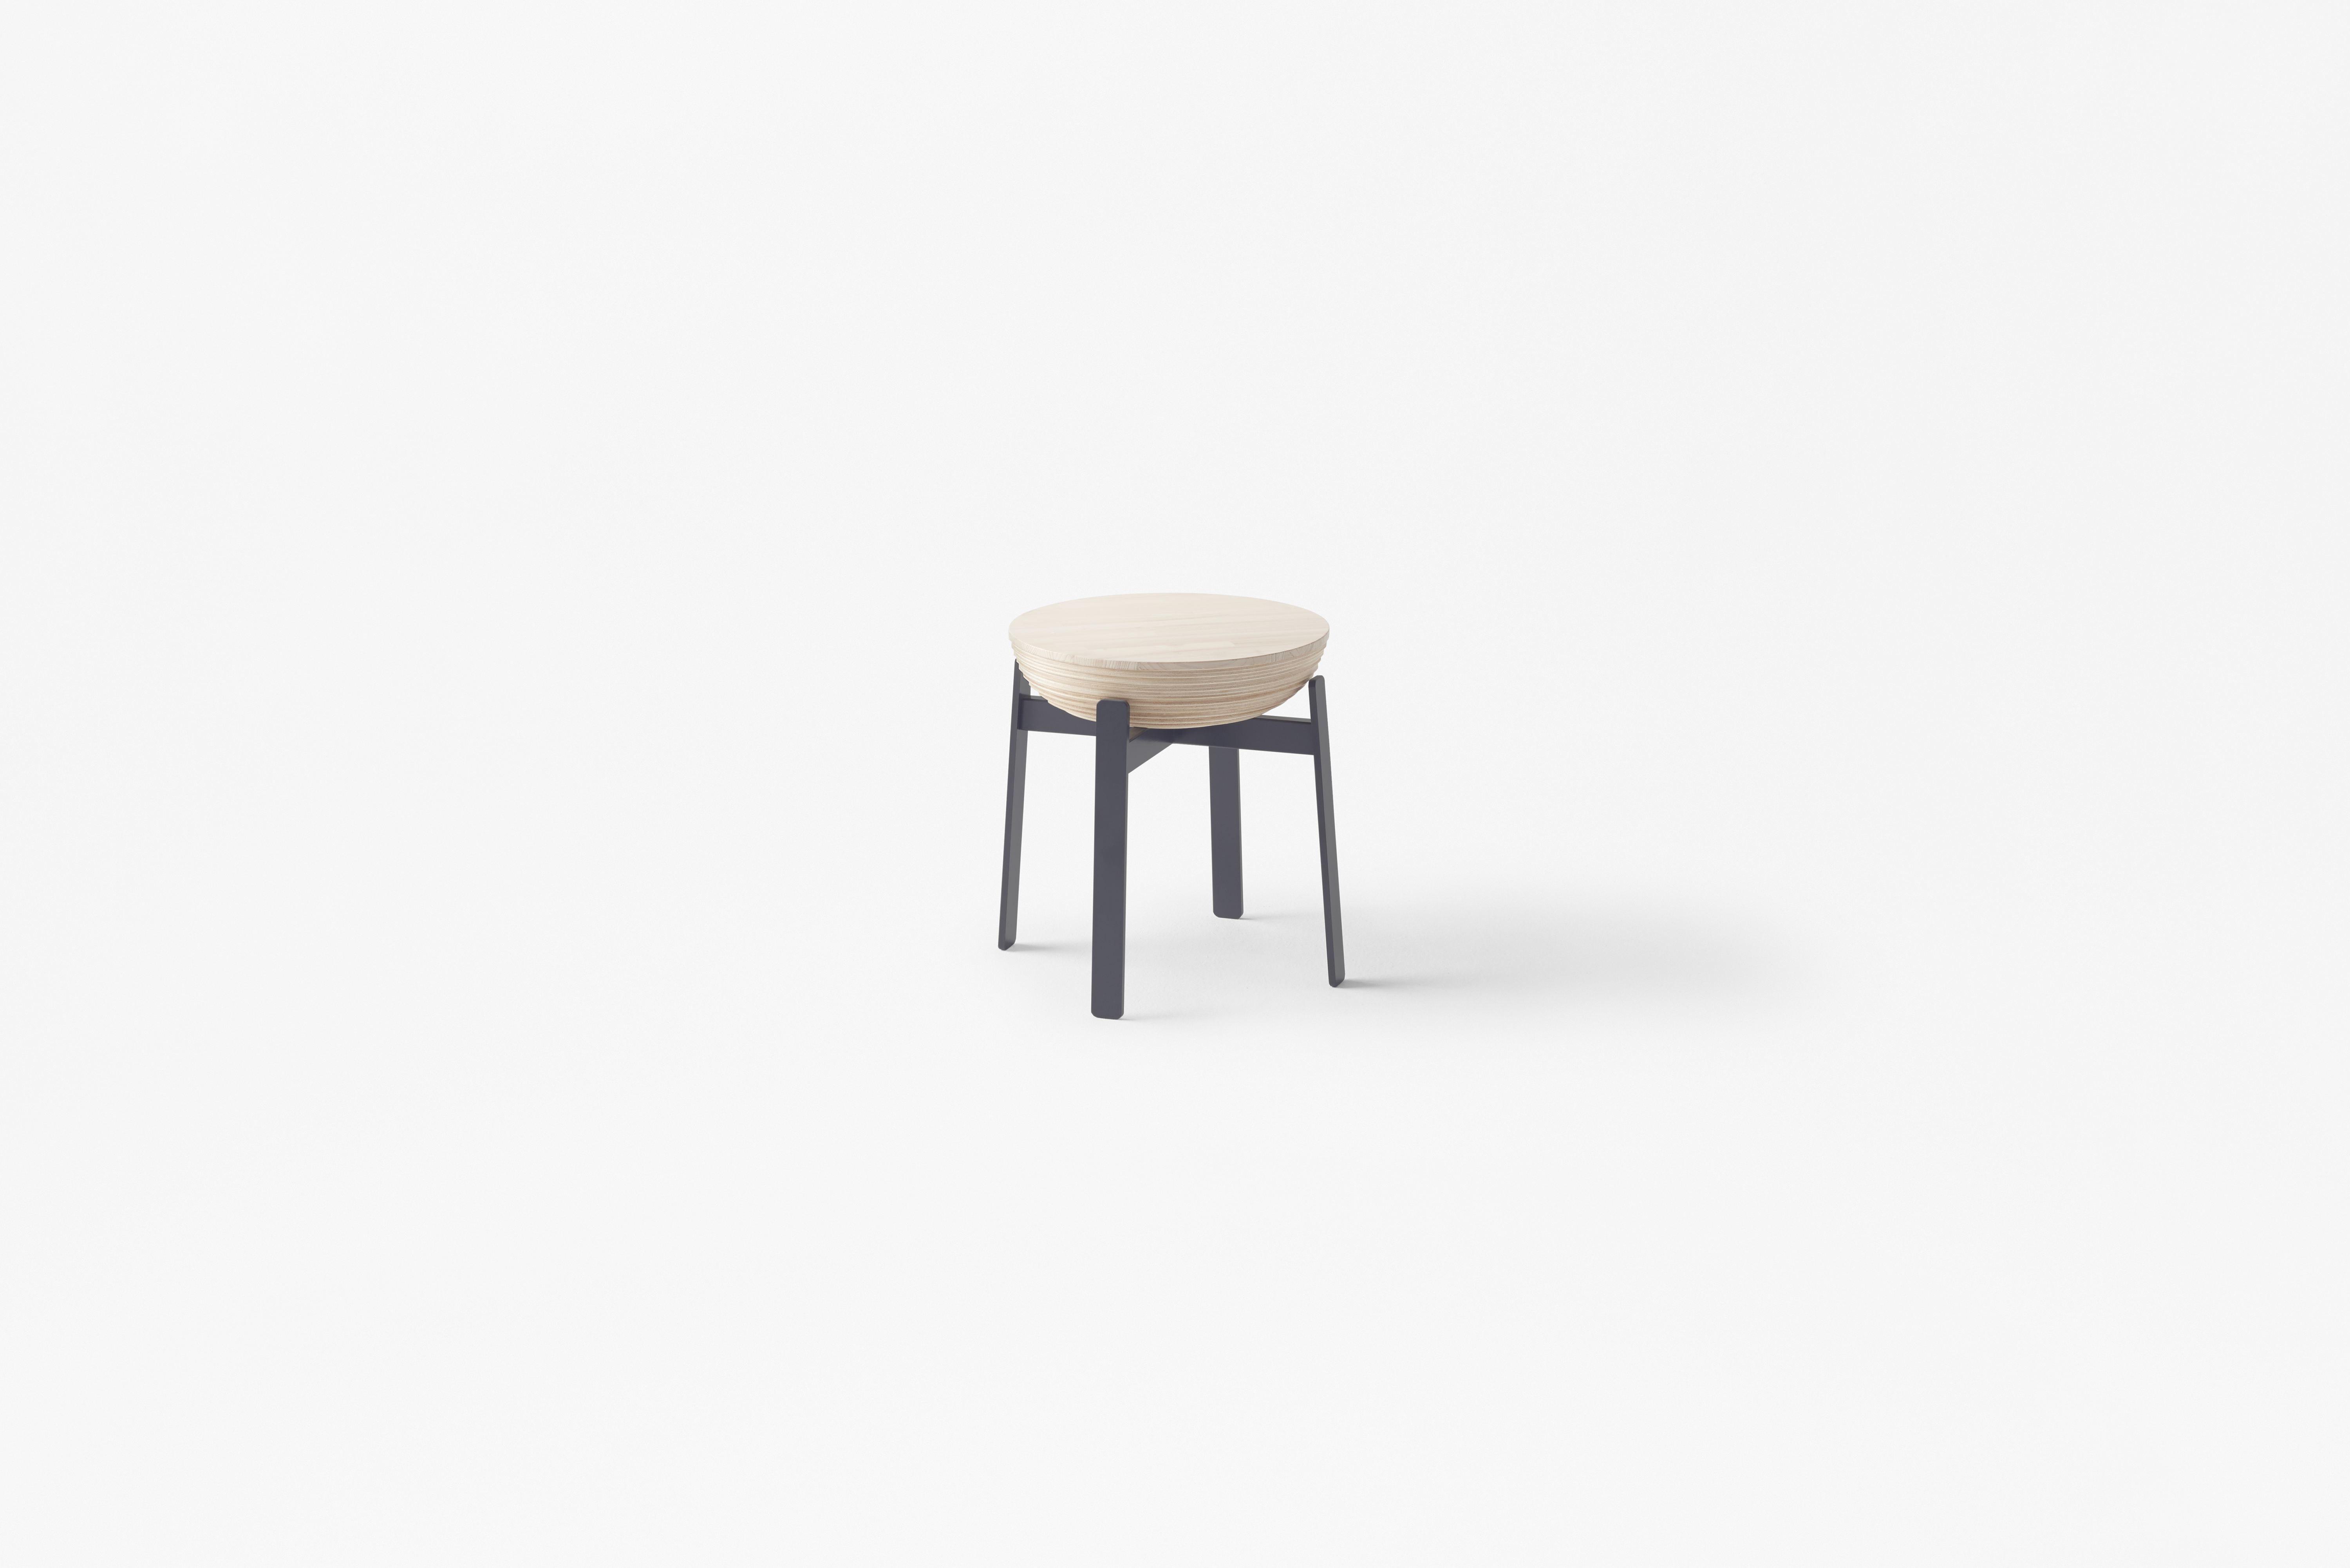 furniture02